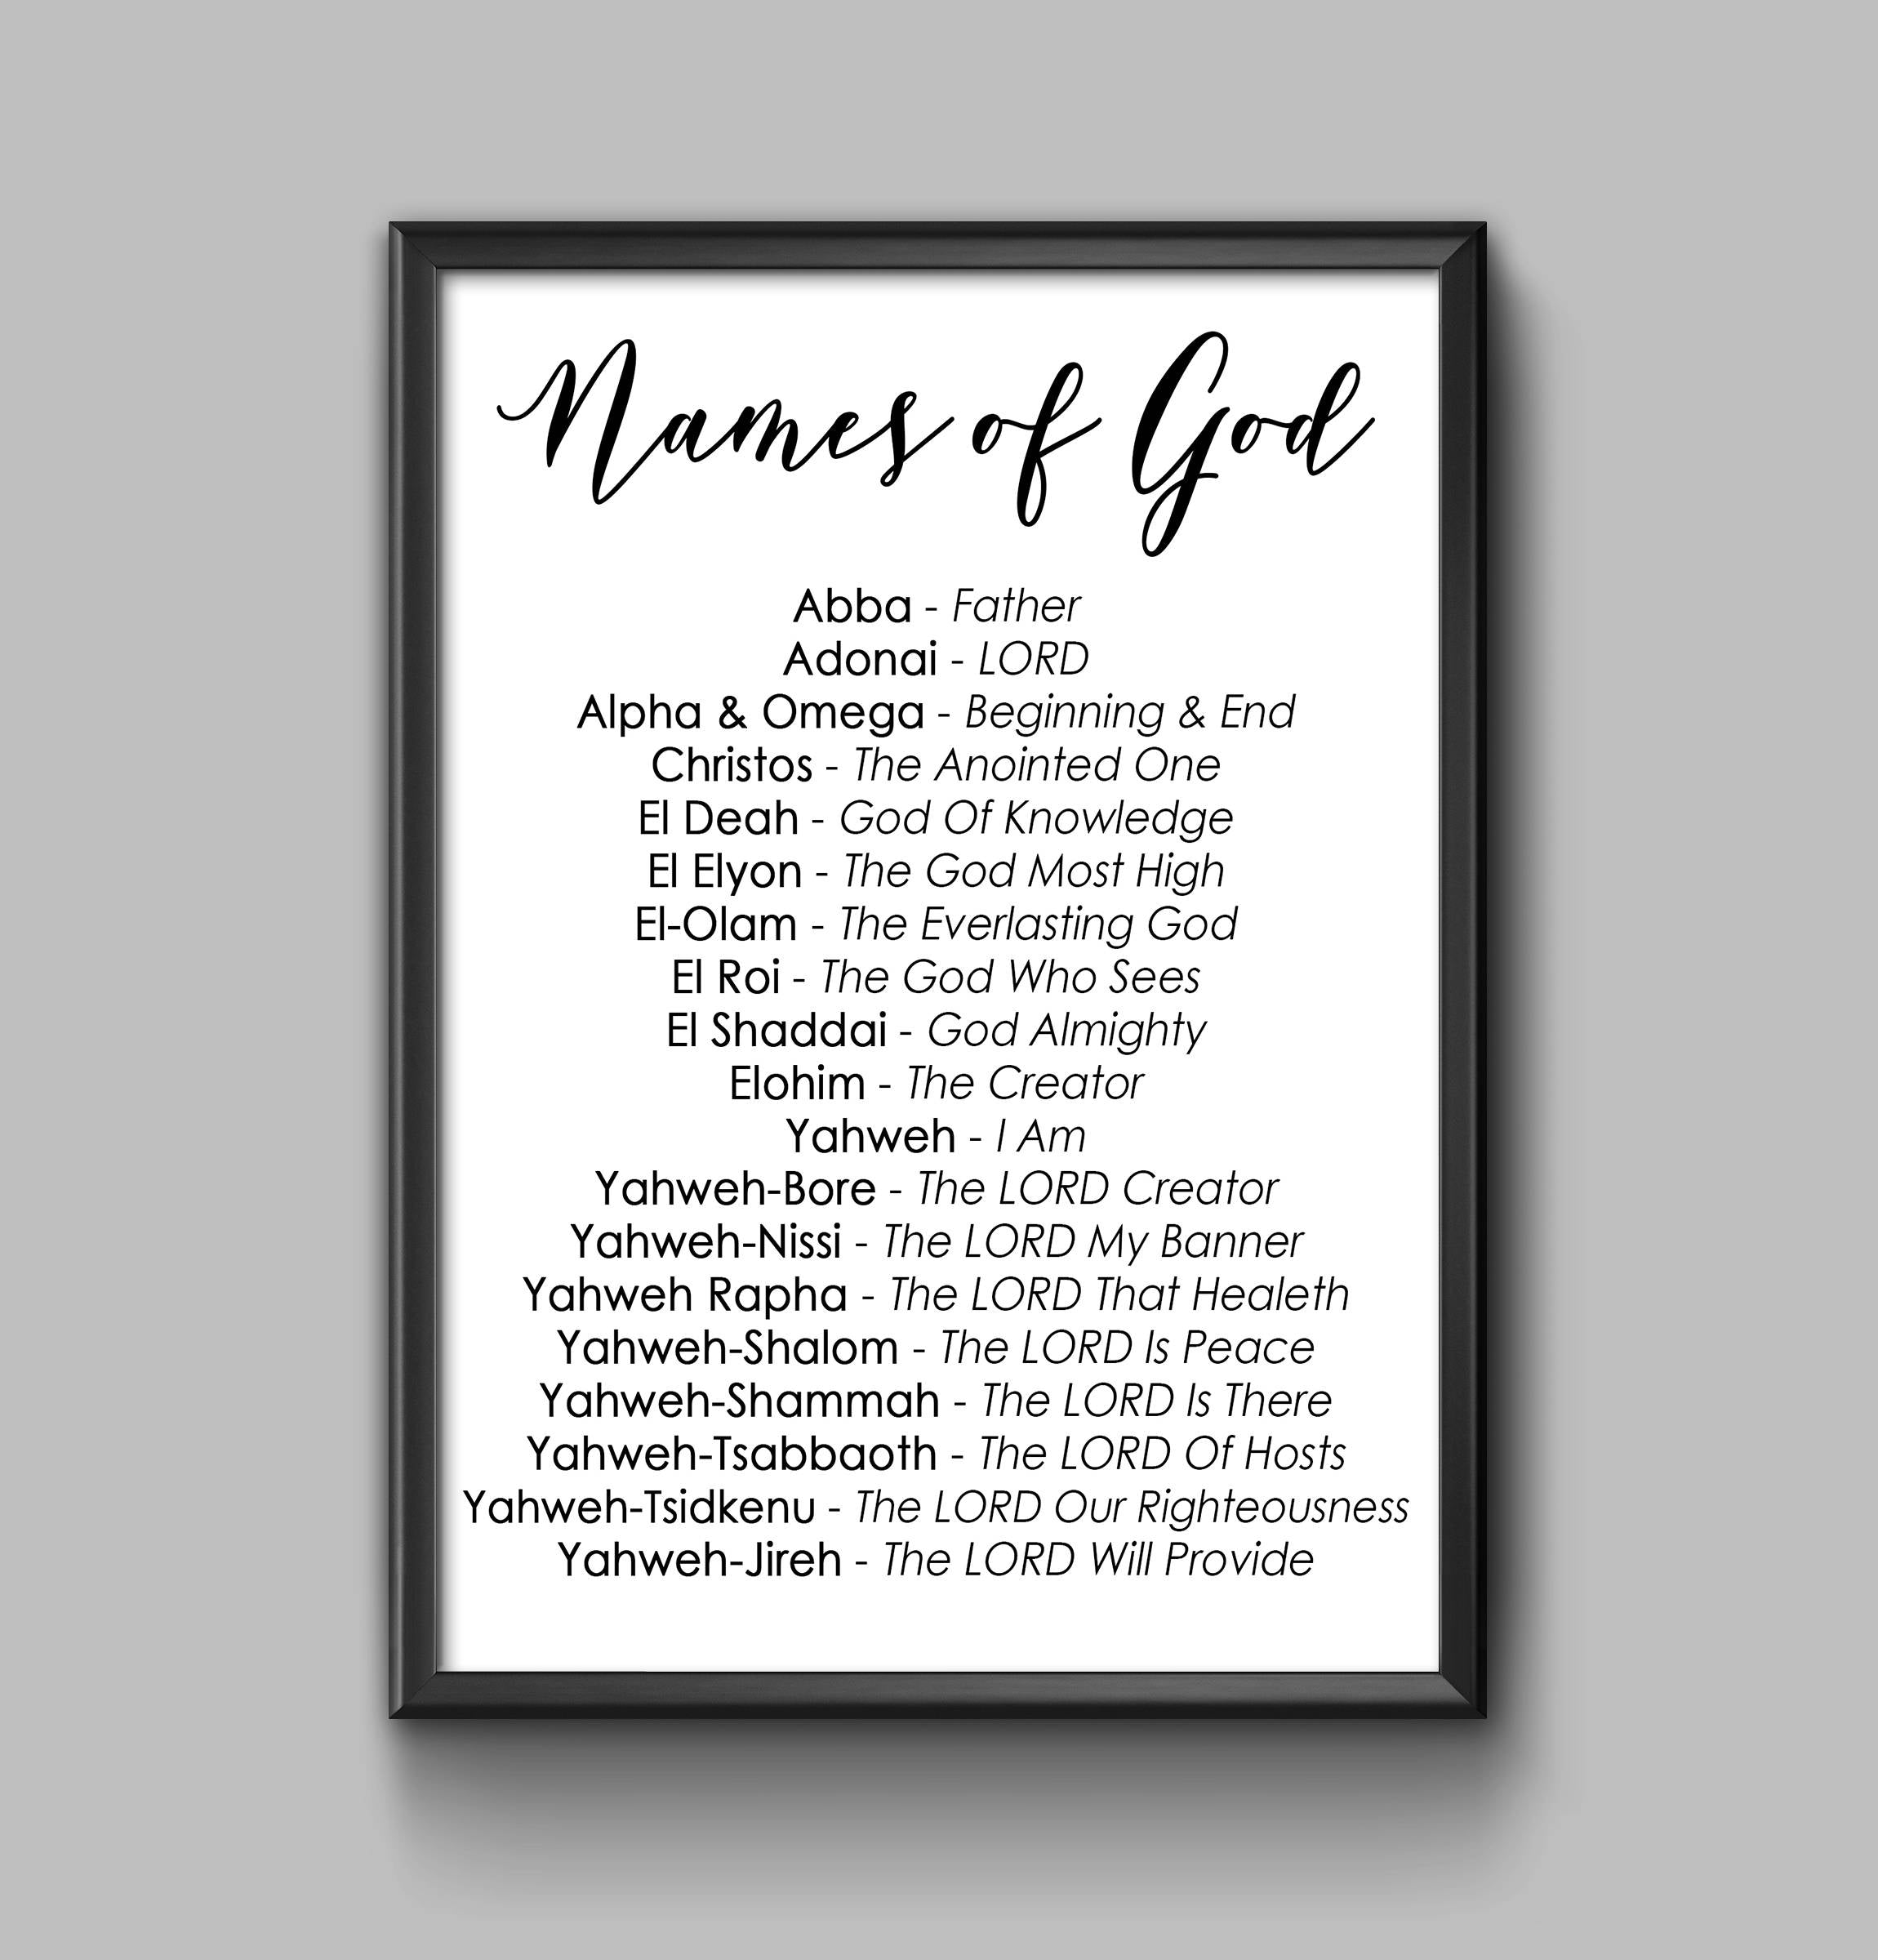 Names of God (Posters) - While Supplies Last